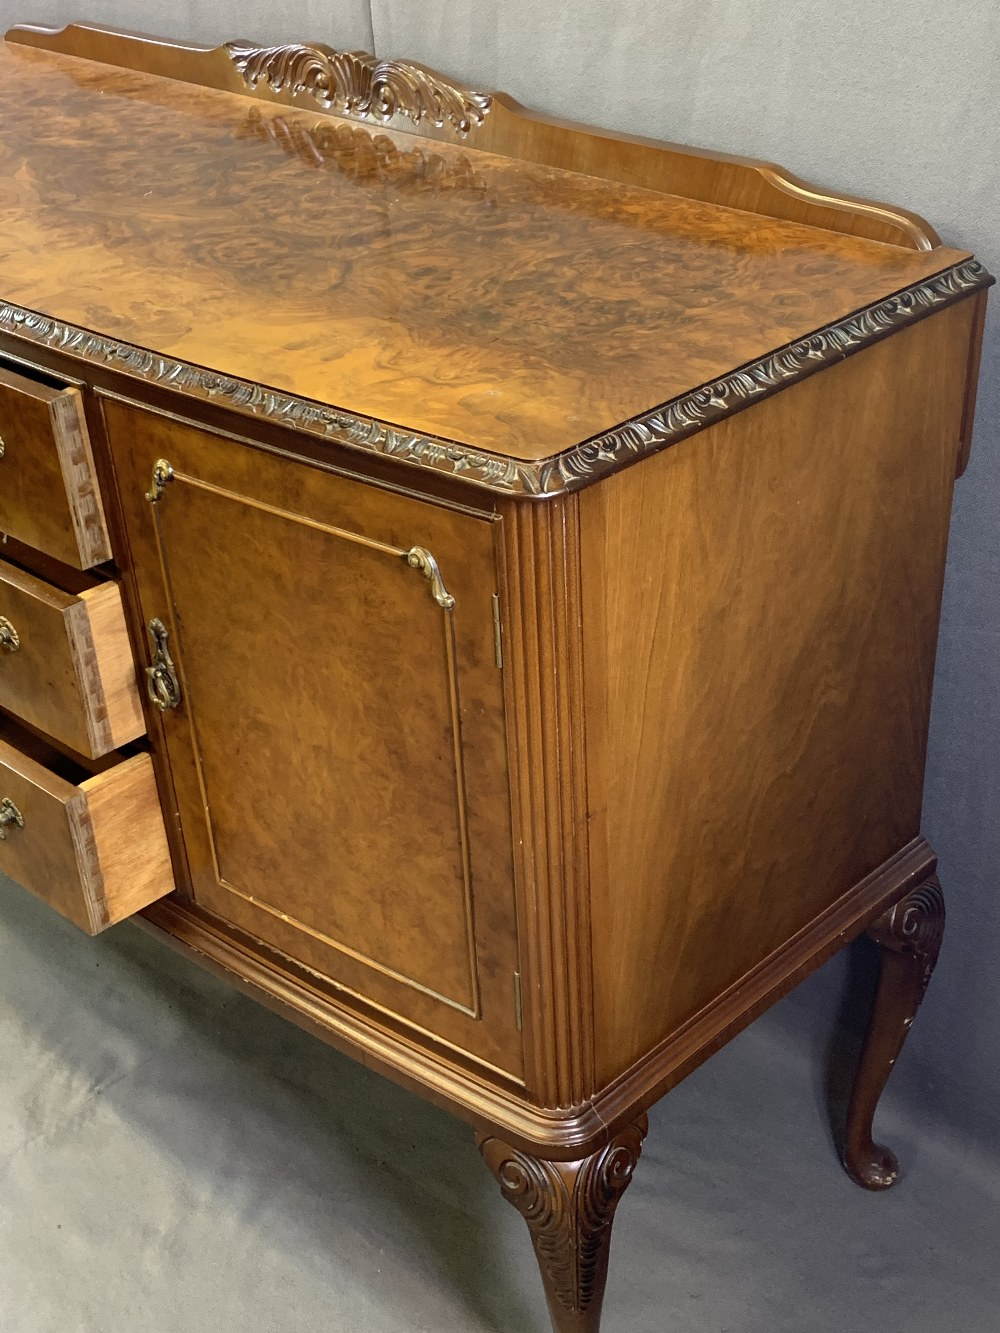 VINTAGE BURR WALNUT DINING SUITE consisting of sideboard, 92.5cms H, 140cms max W, 53.5cms D, - Image 5 of 9